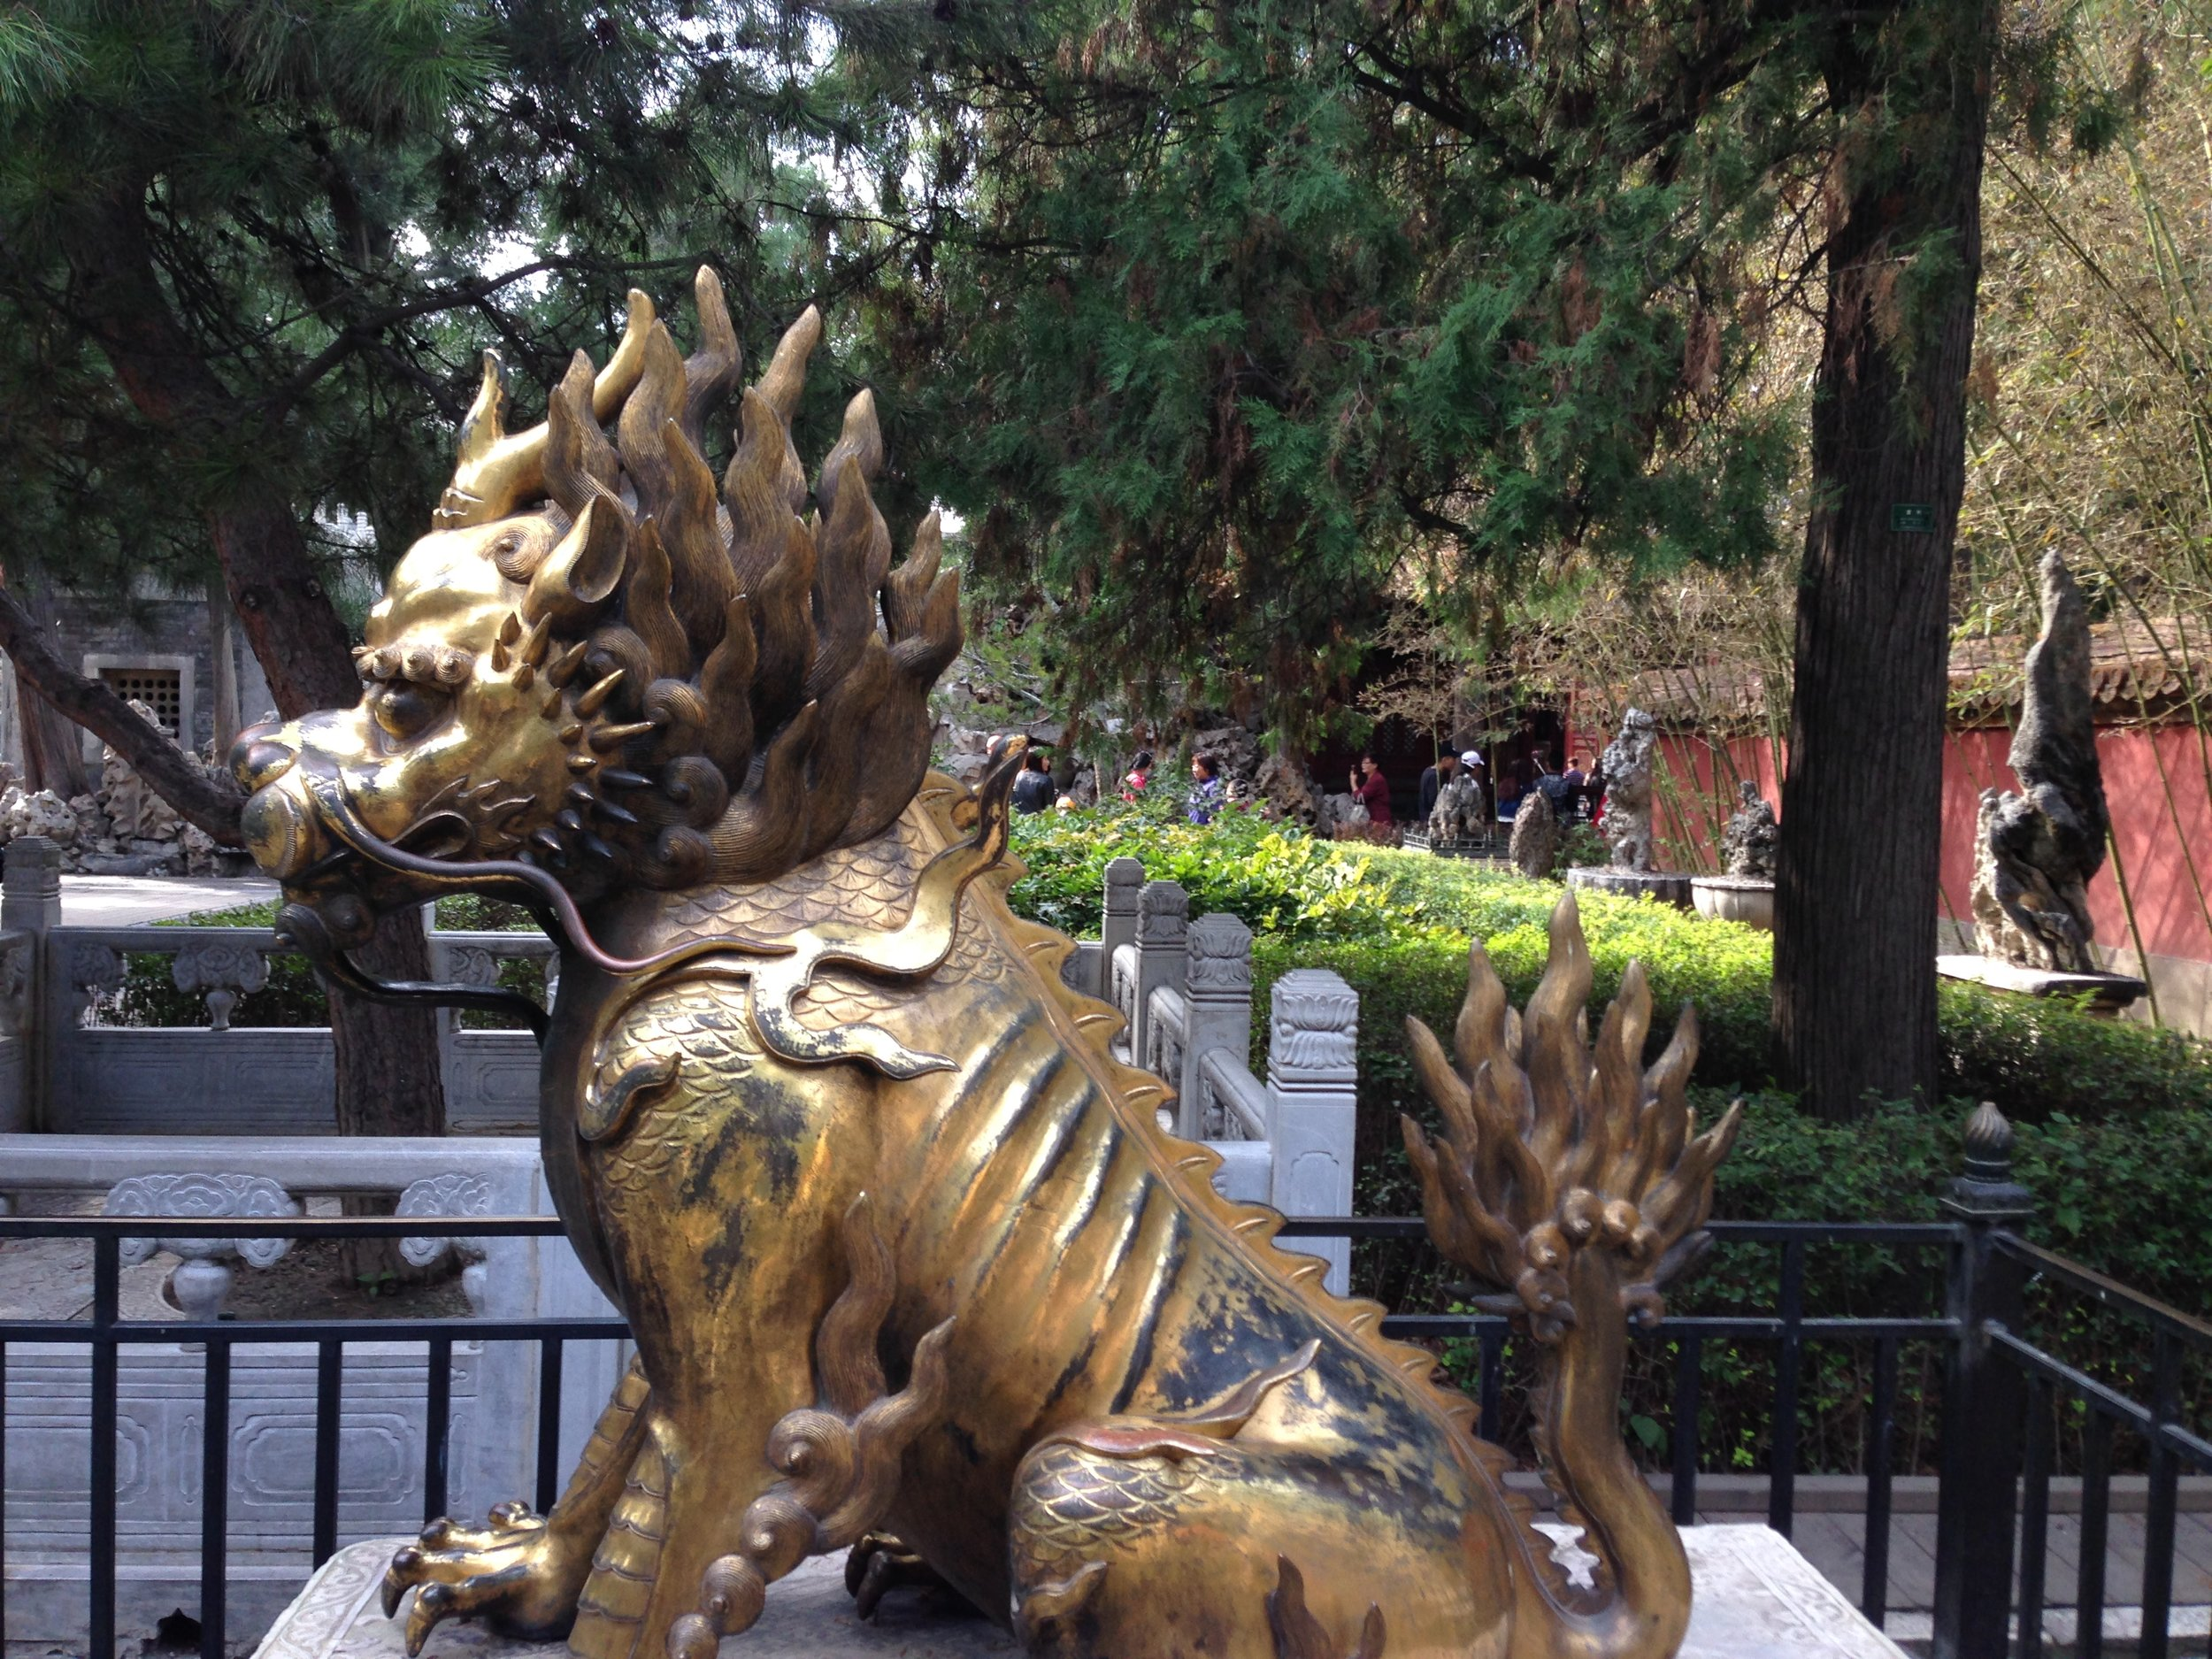 Not a lion but one of the  nine sons of the dragon  in Chinese mythology.